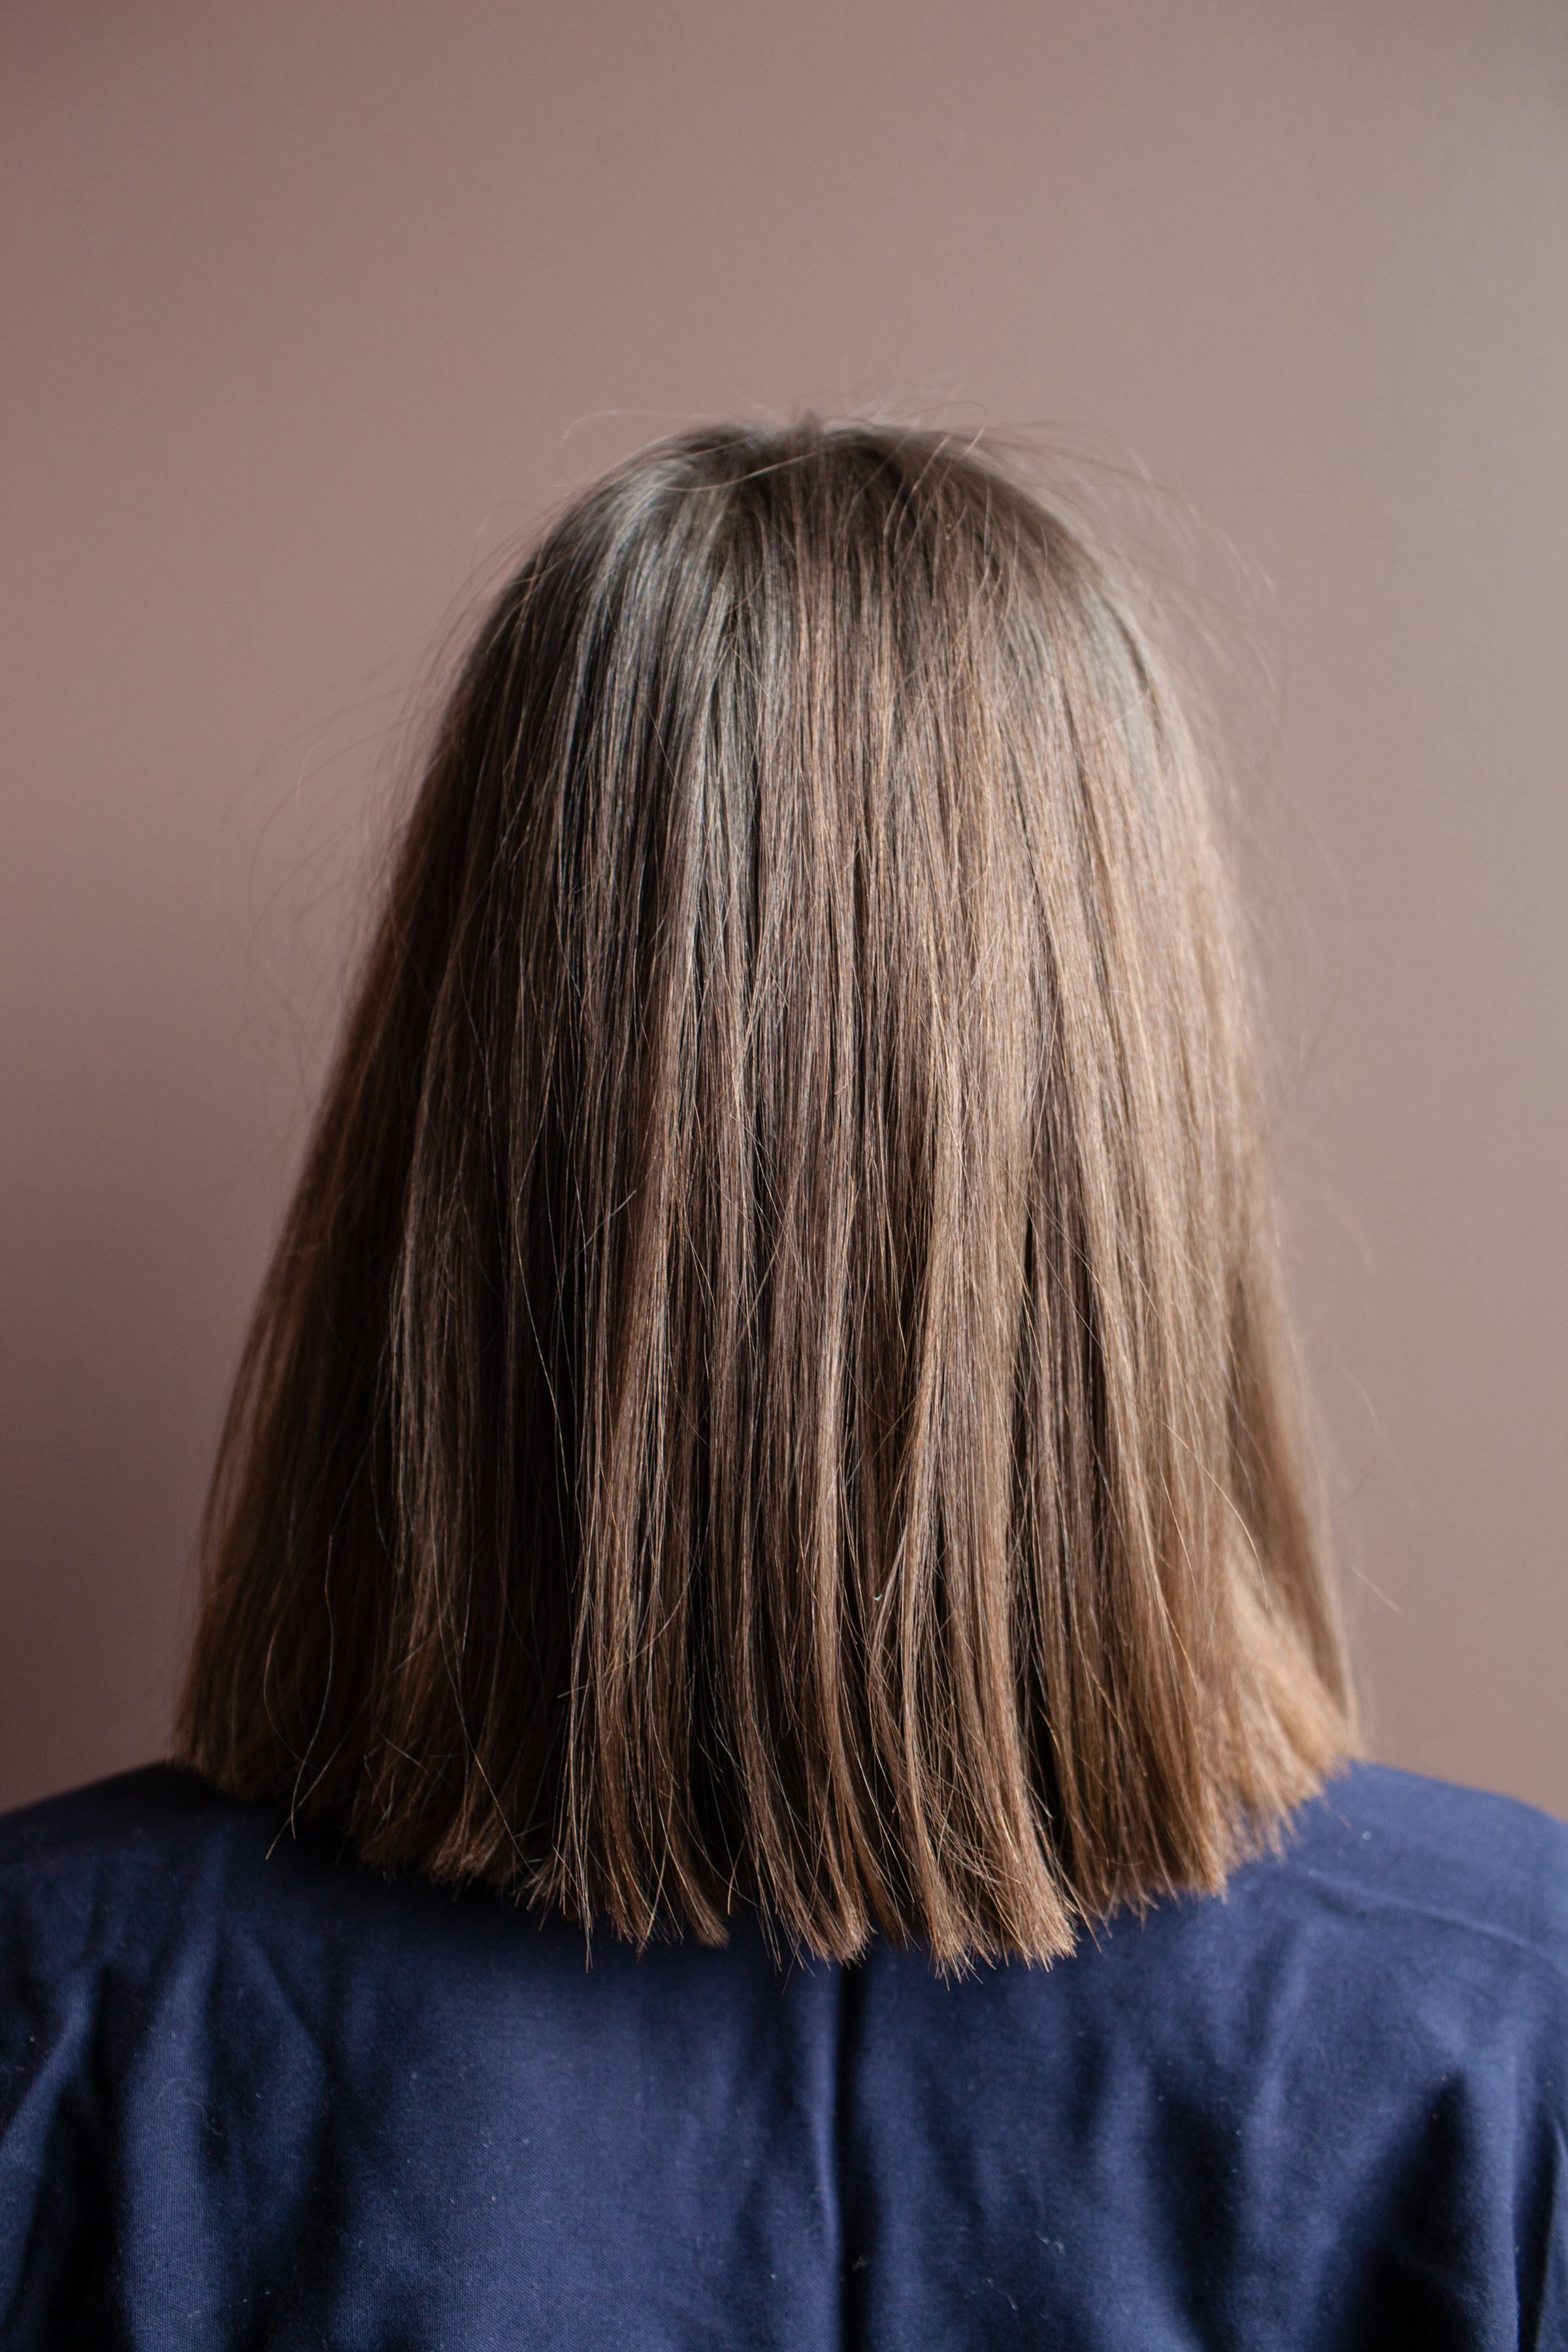 Classic blunt cut at cg hair by sabrina michaels for bumble and